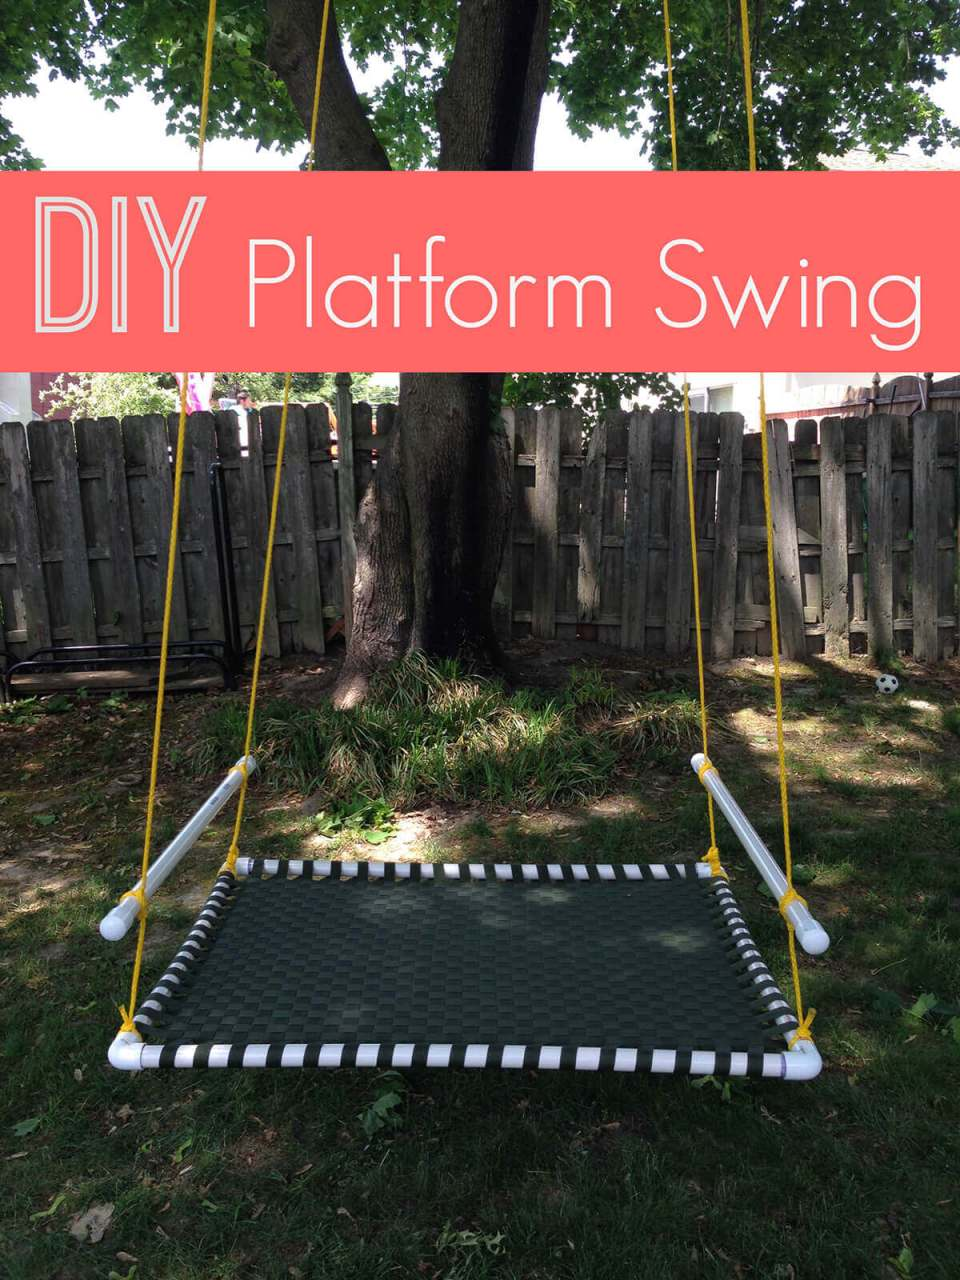 Totally Lounge-worthy DIY Platform Swing